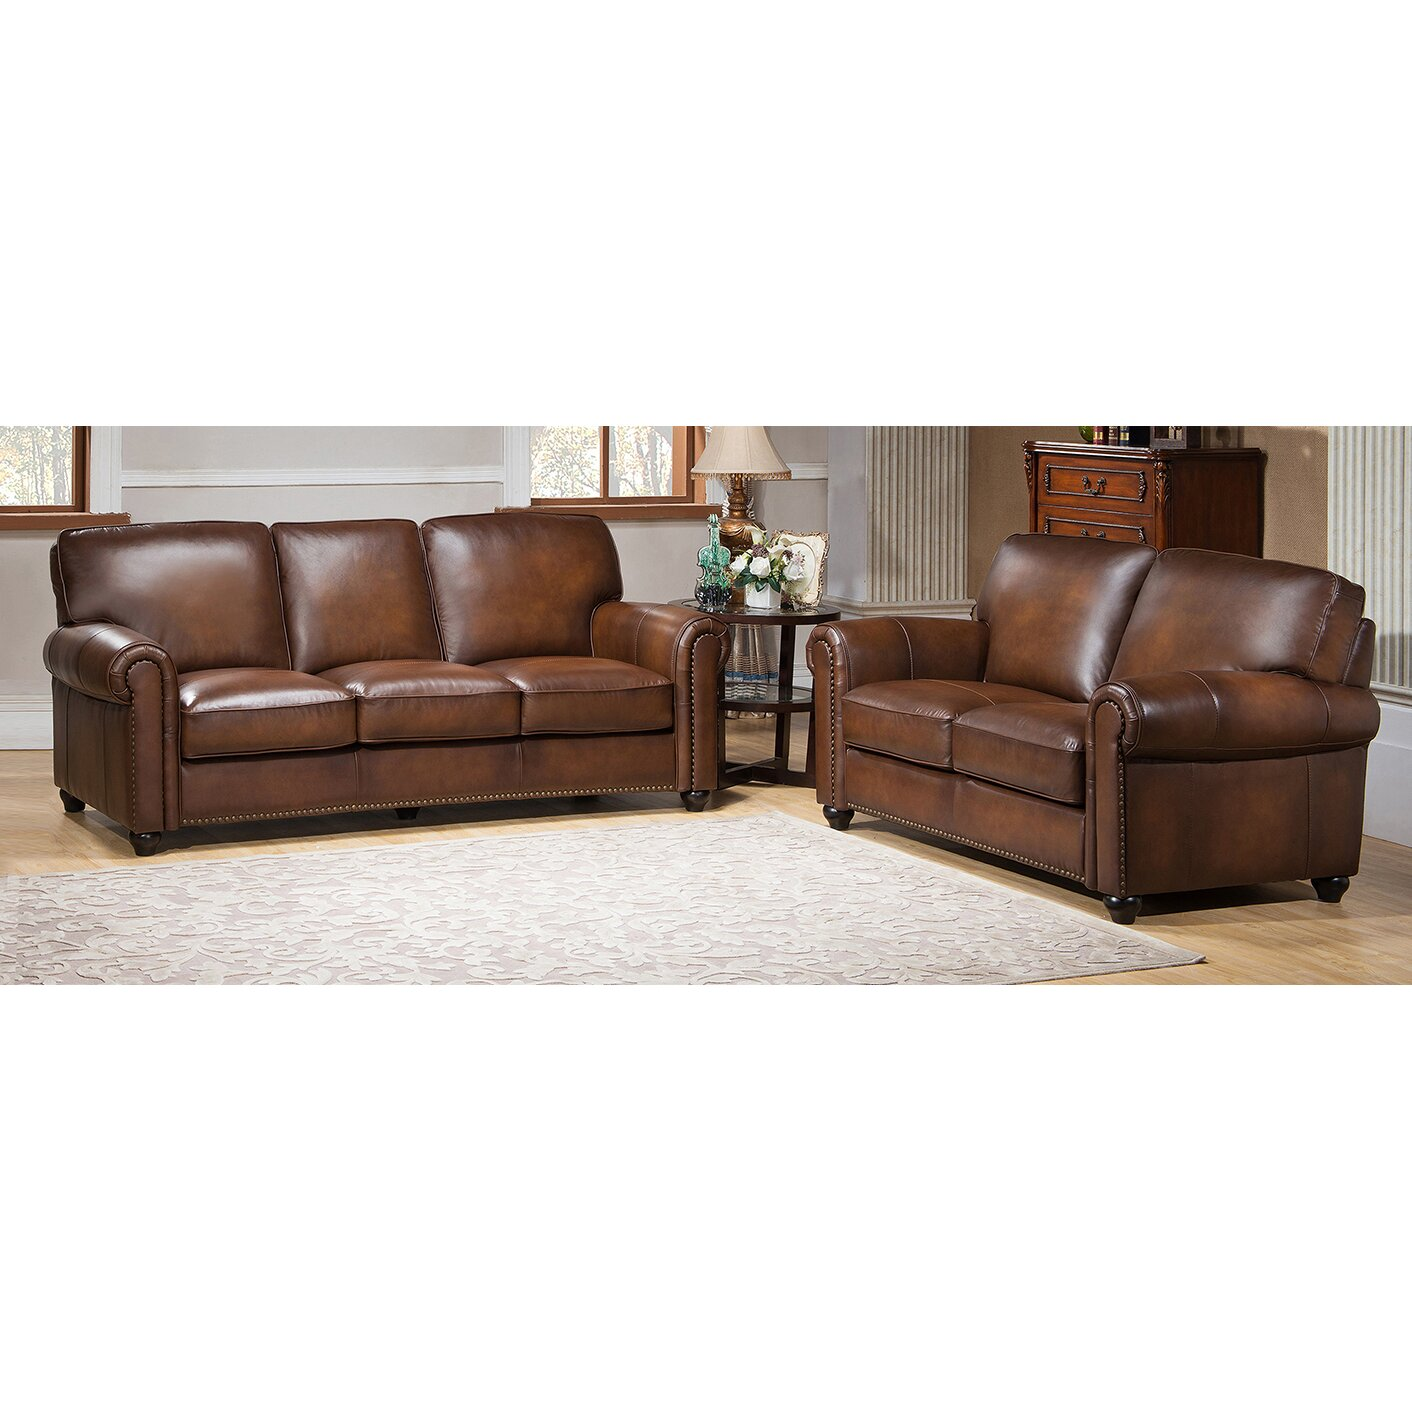 Amax aspen leather sofa and loveseat set wayfair for Leather sofa and loveseat set